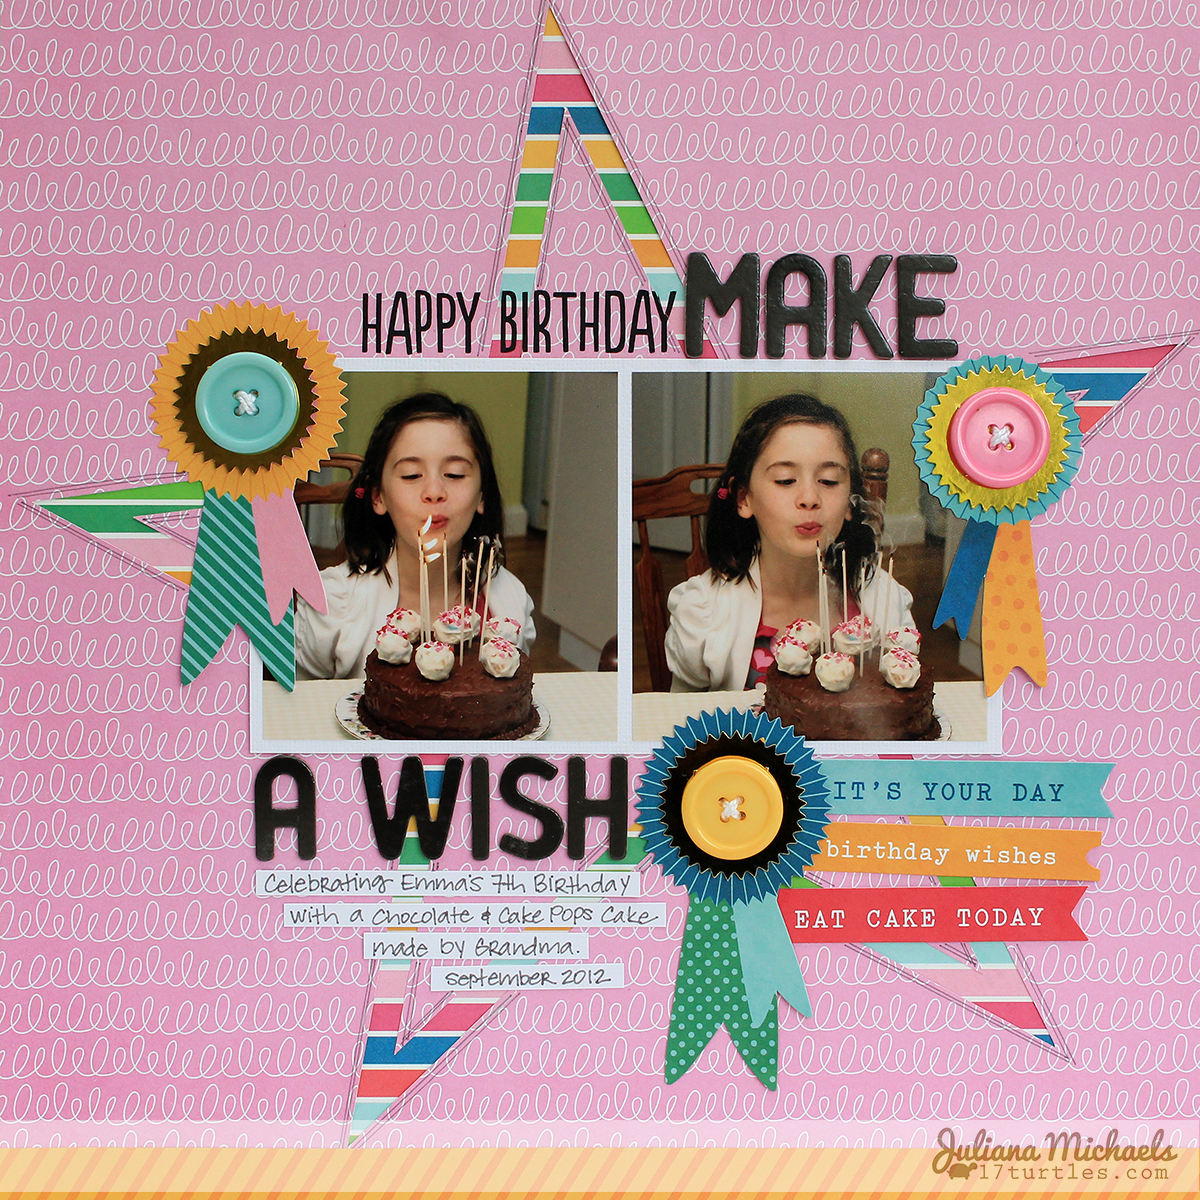 How to make scrapbook for birthday - Birthday Scrapbook Page Ideas Pebbles